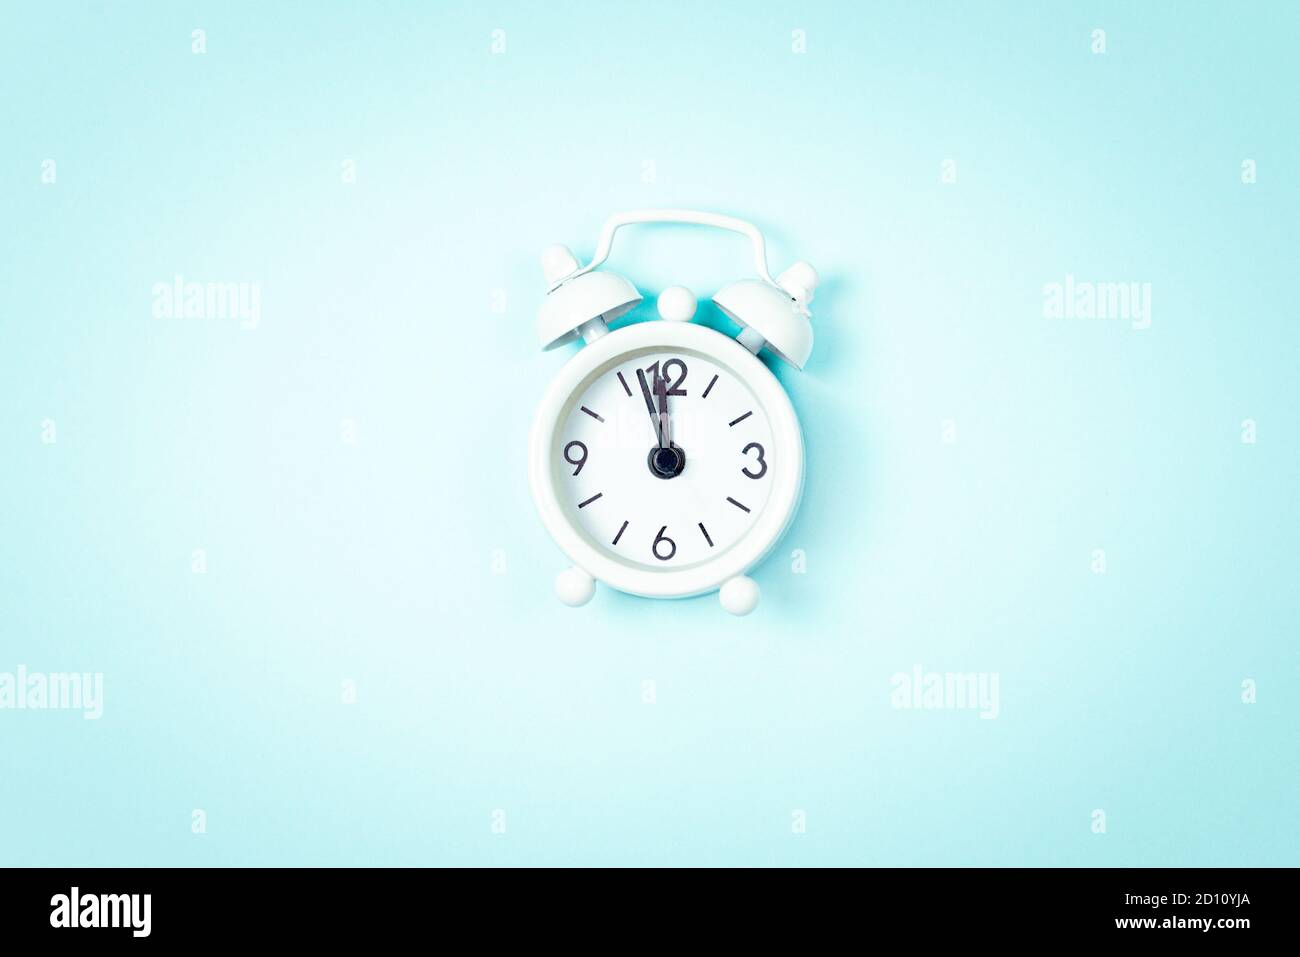 White vintage style alarm clock showing five minutes left untill midnight over blue background. New Year advent. Stock Photo